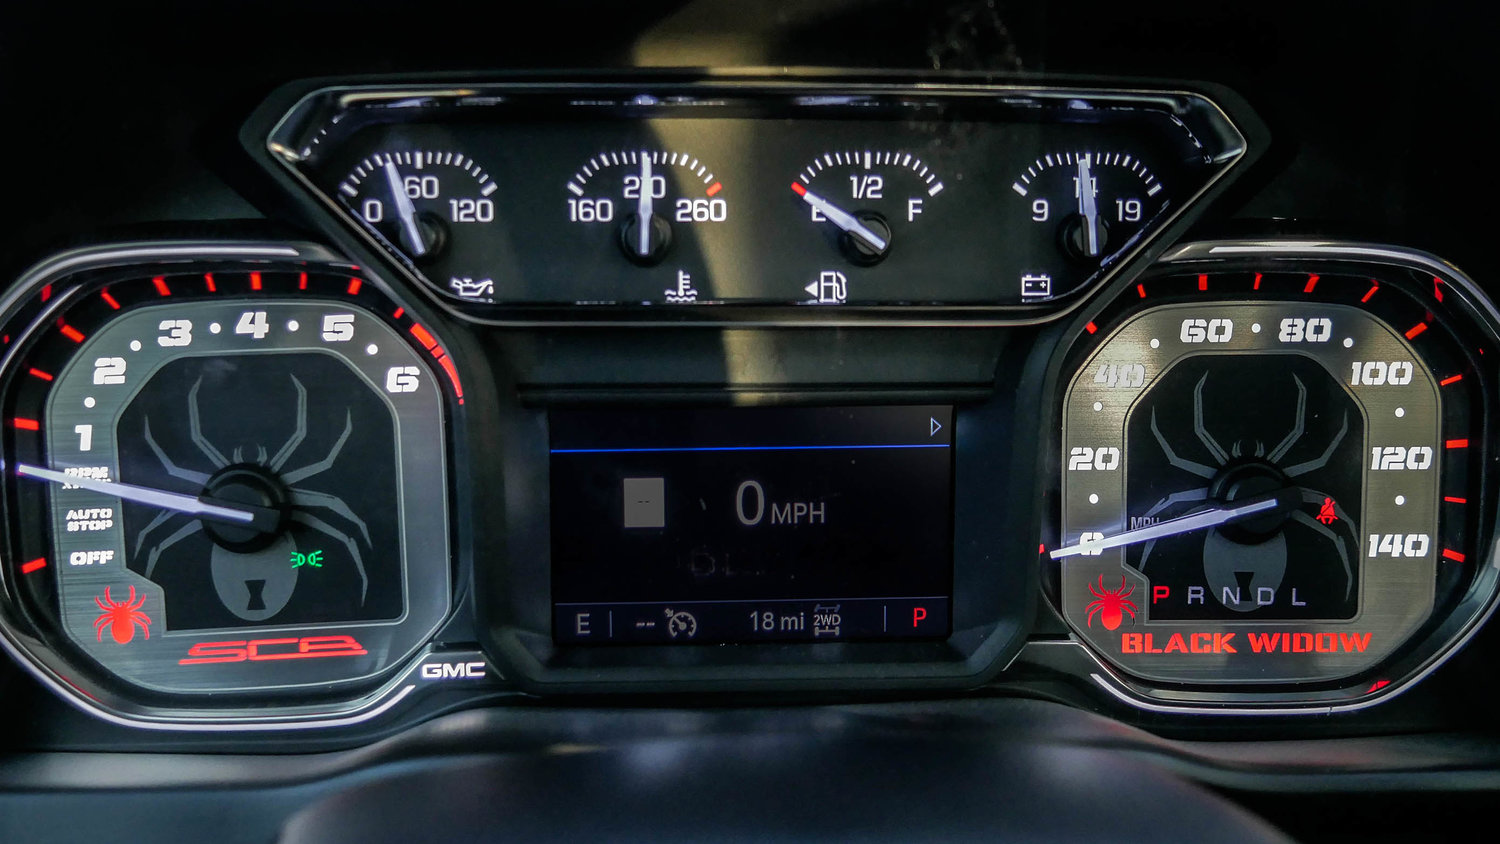 2019 GMC Sierra Black Widow Gauge Cluster